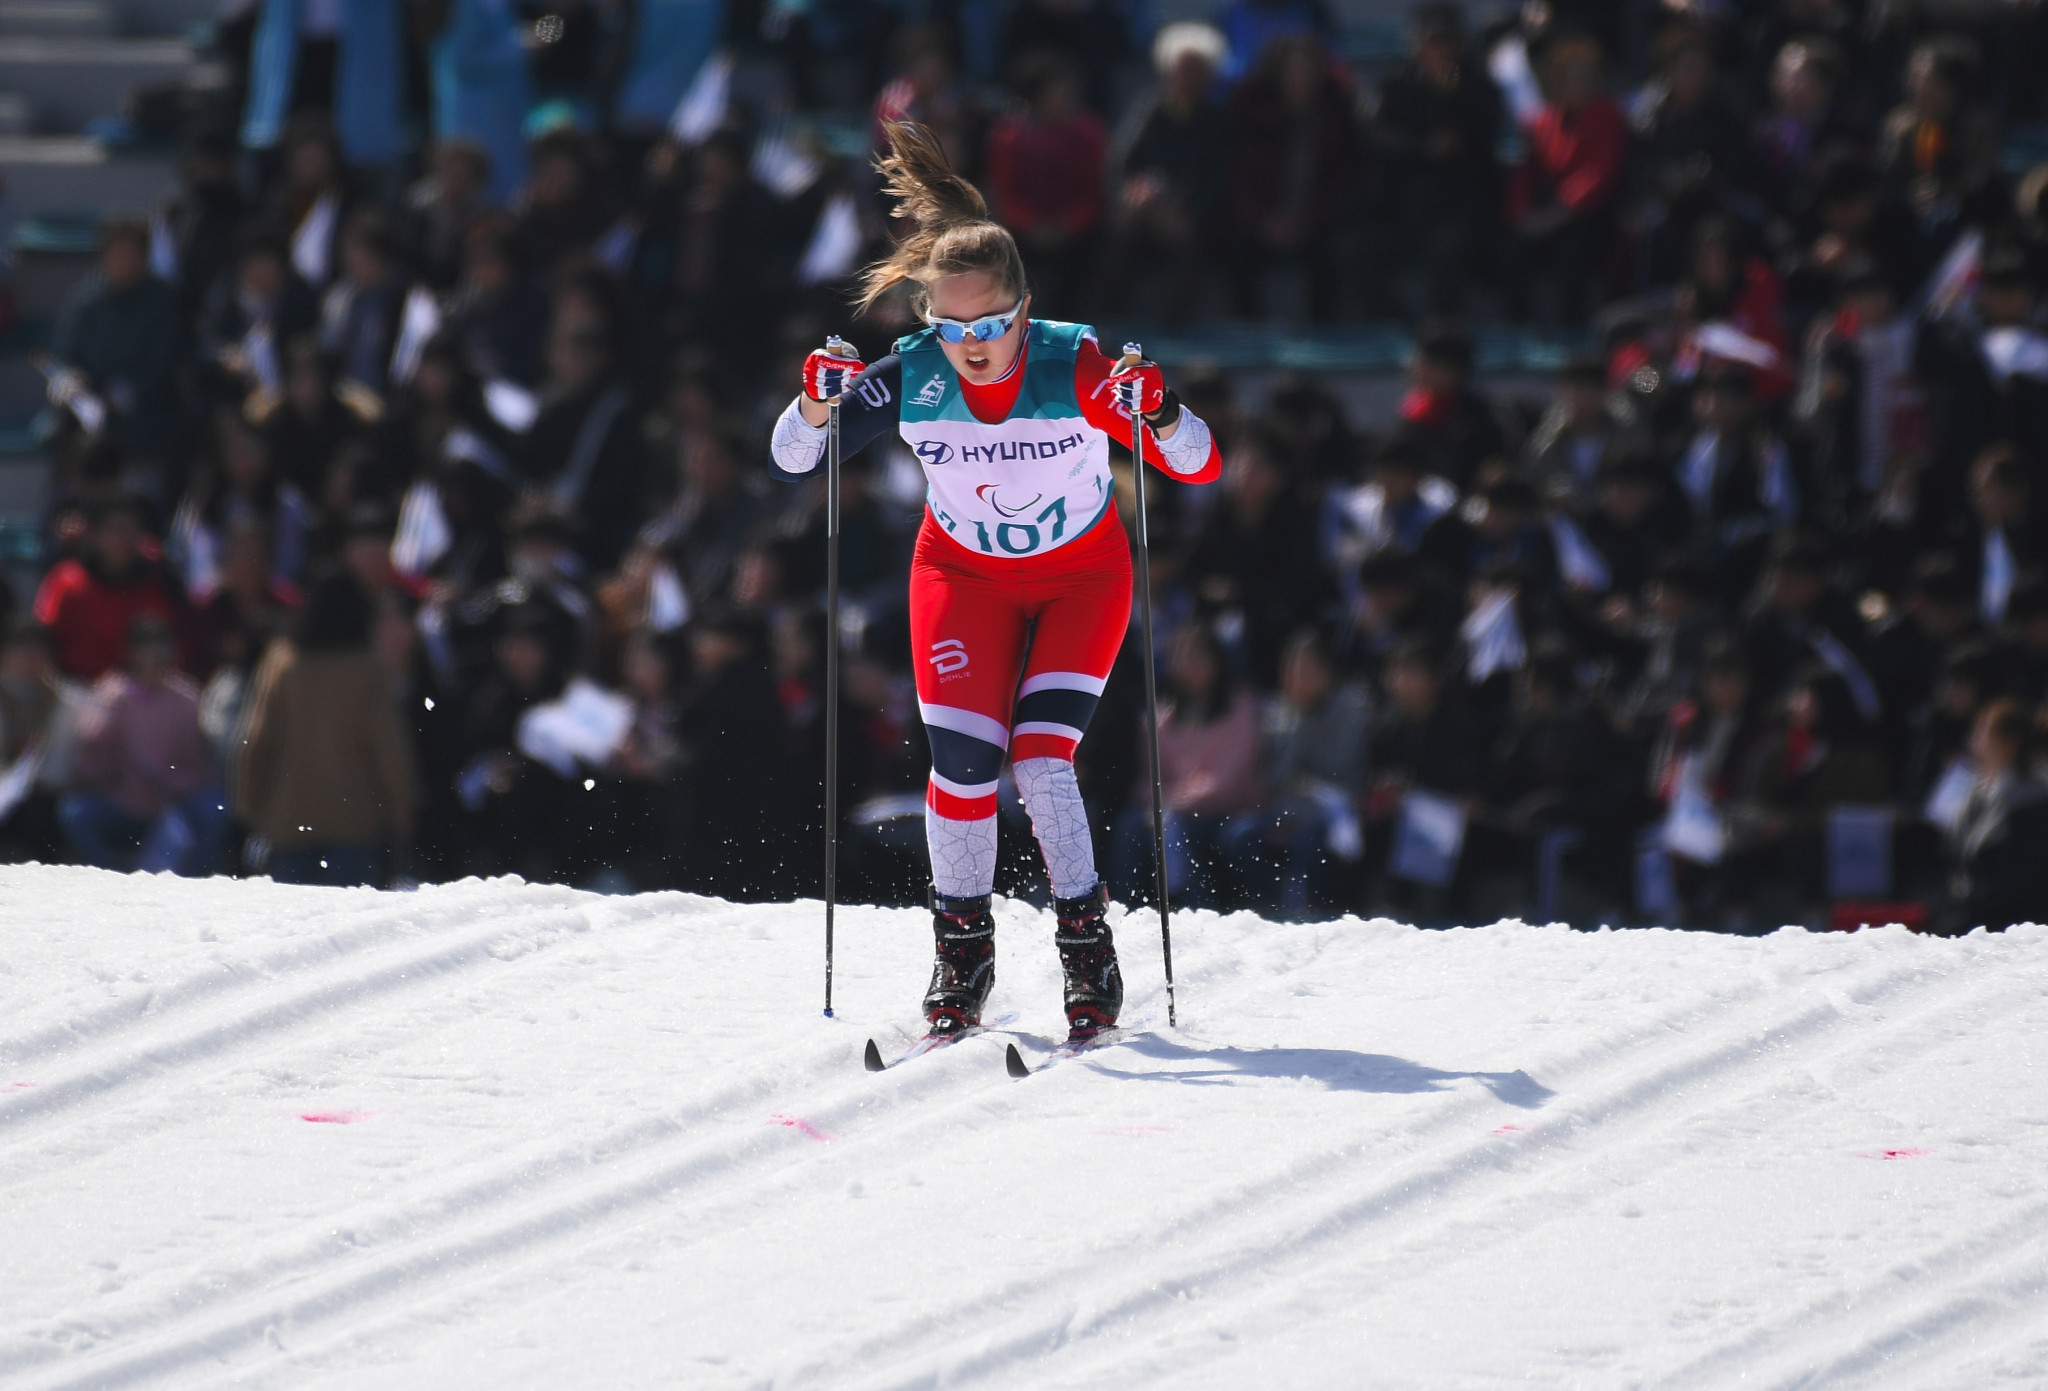 Norway's Vilde Nilsen made it four wins from four in Vuokatti ©Getty Images